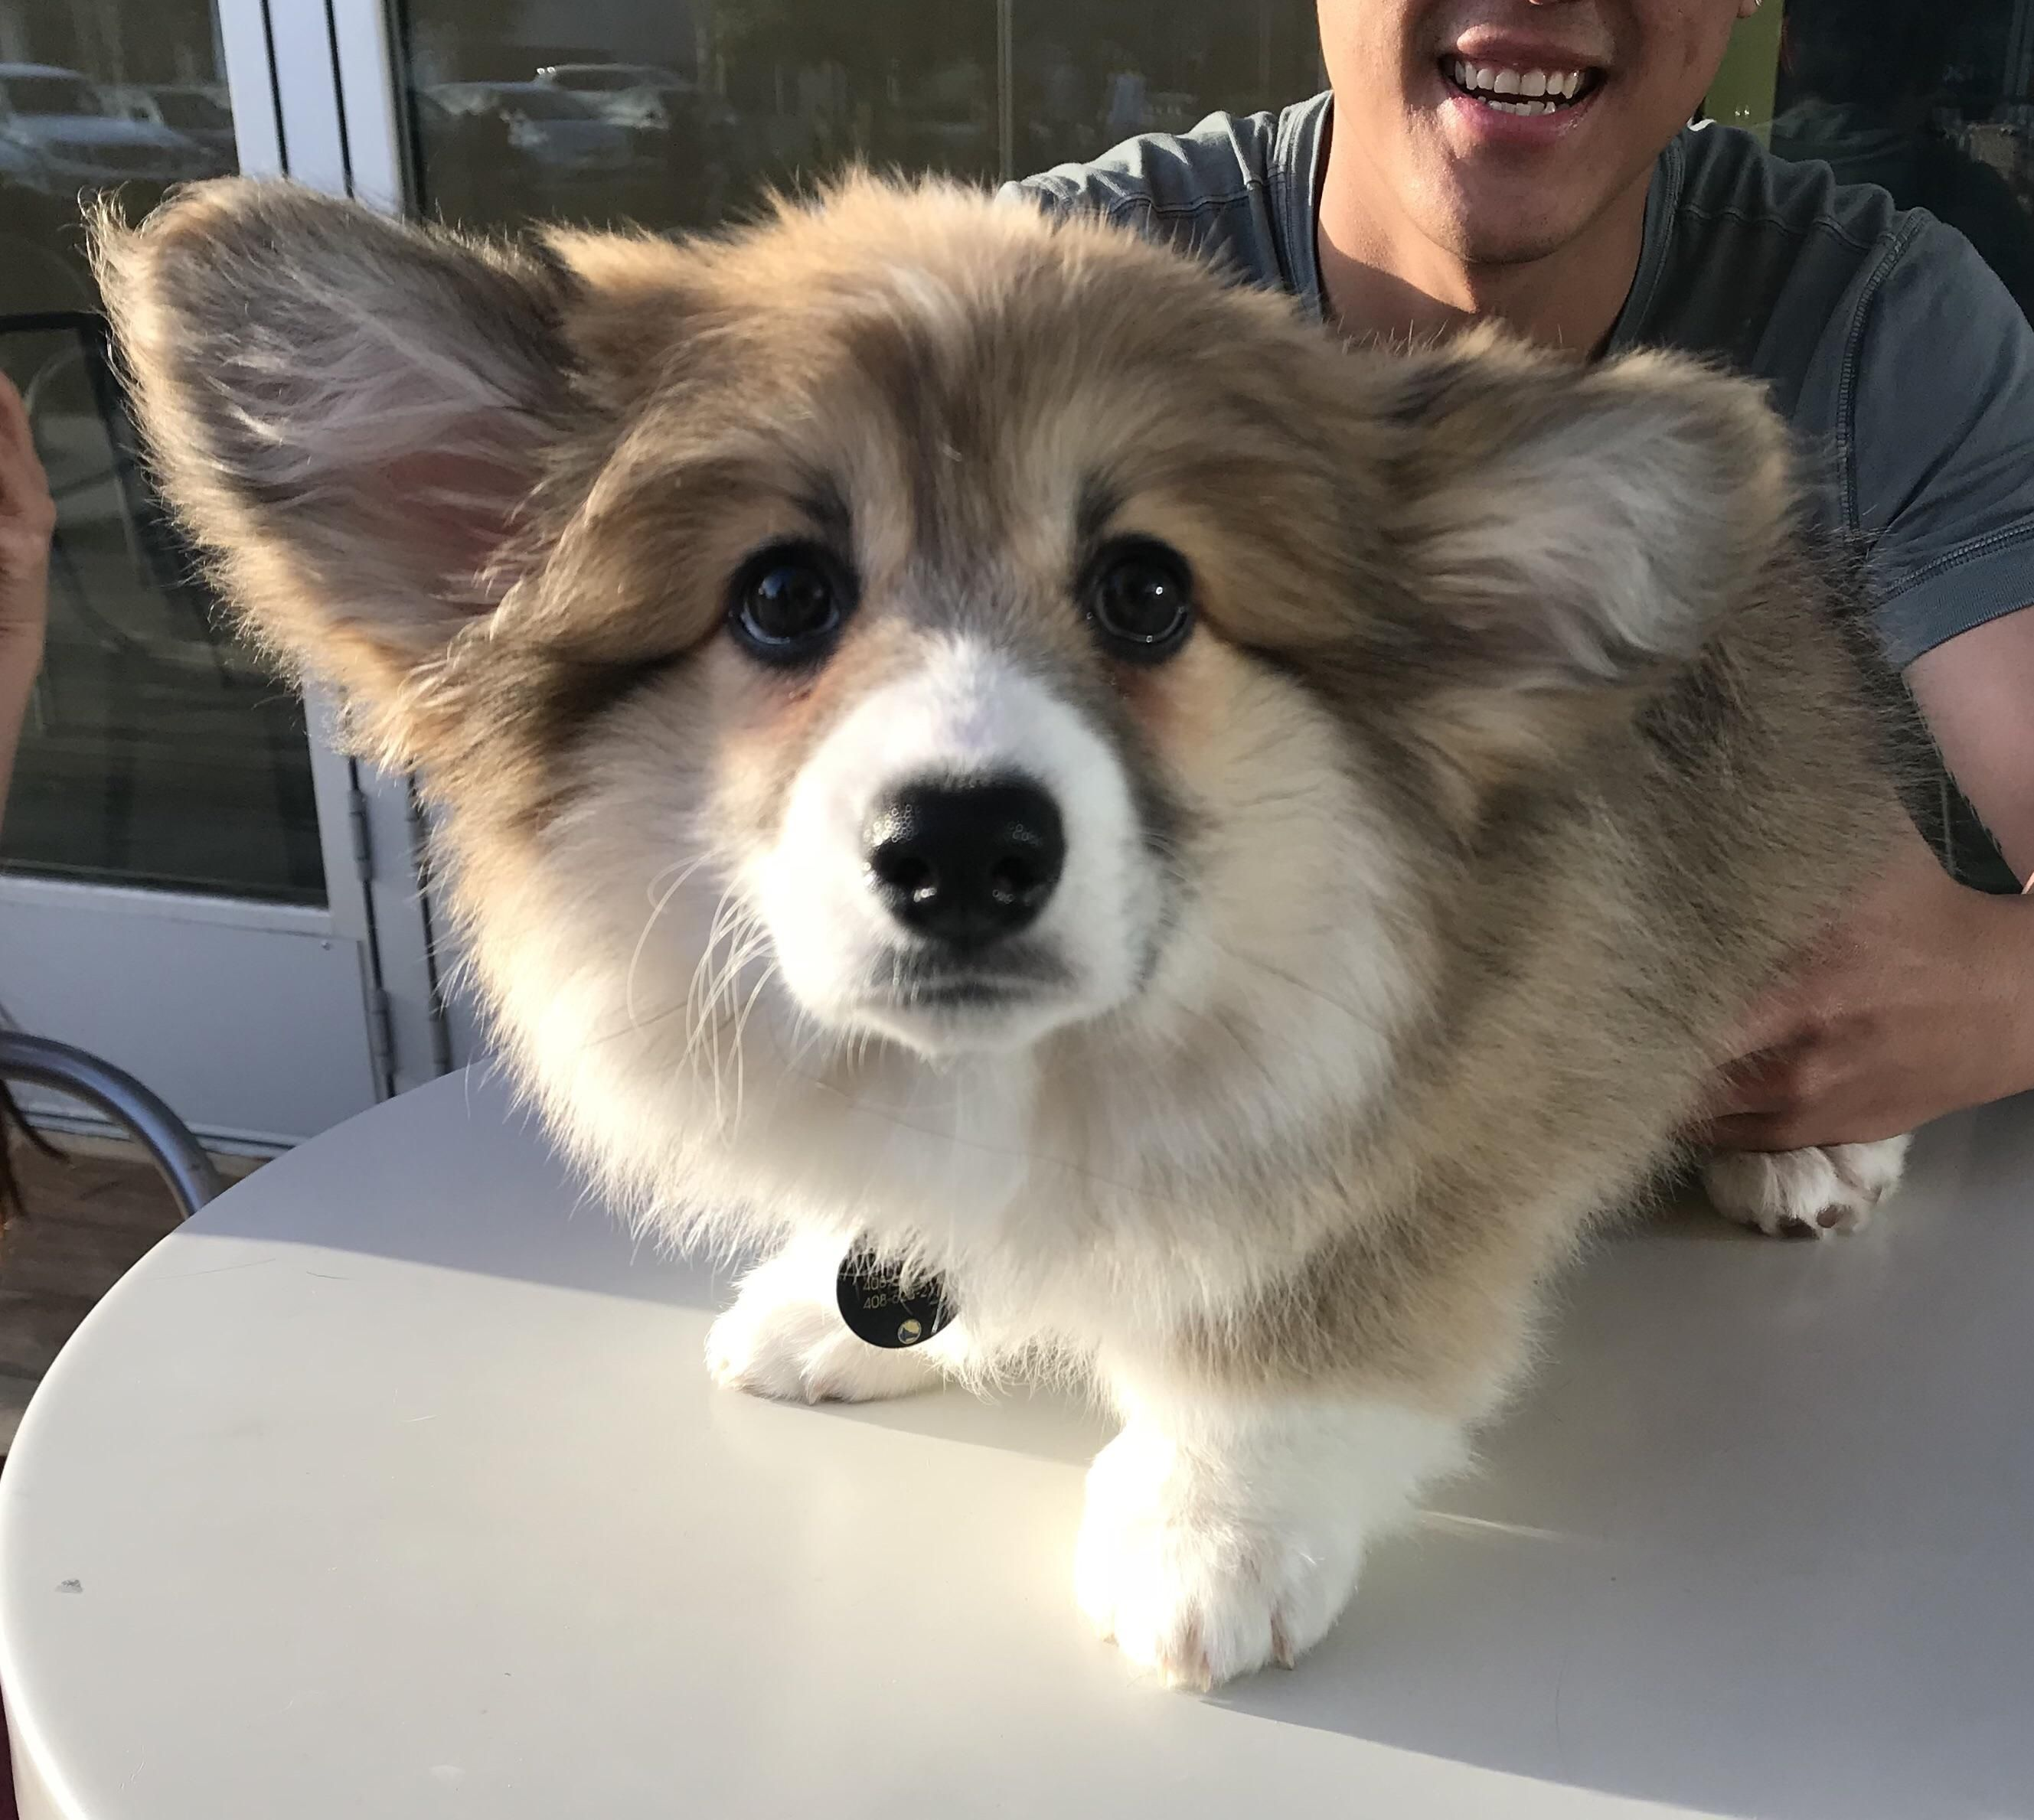 Met Cinnabar The Fluffy Corgi Puppy Over The Weekend And My Heart